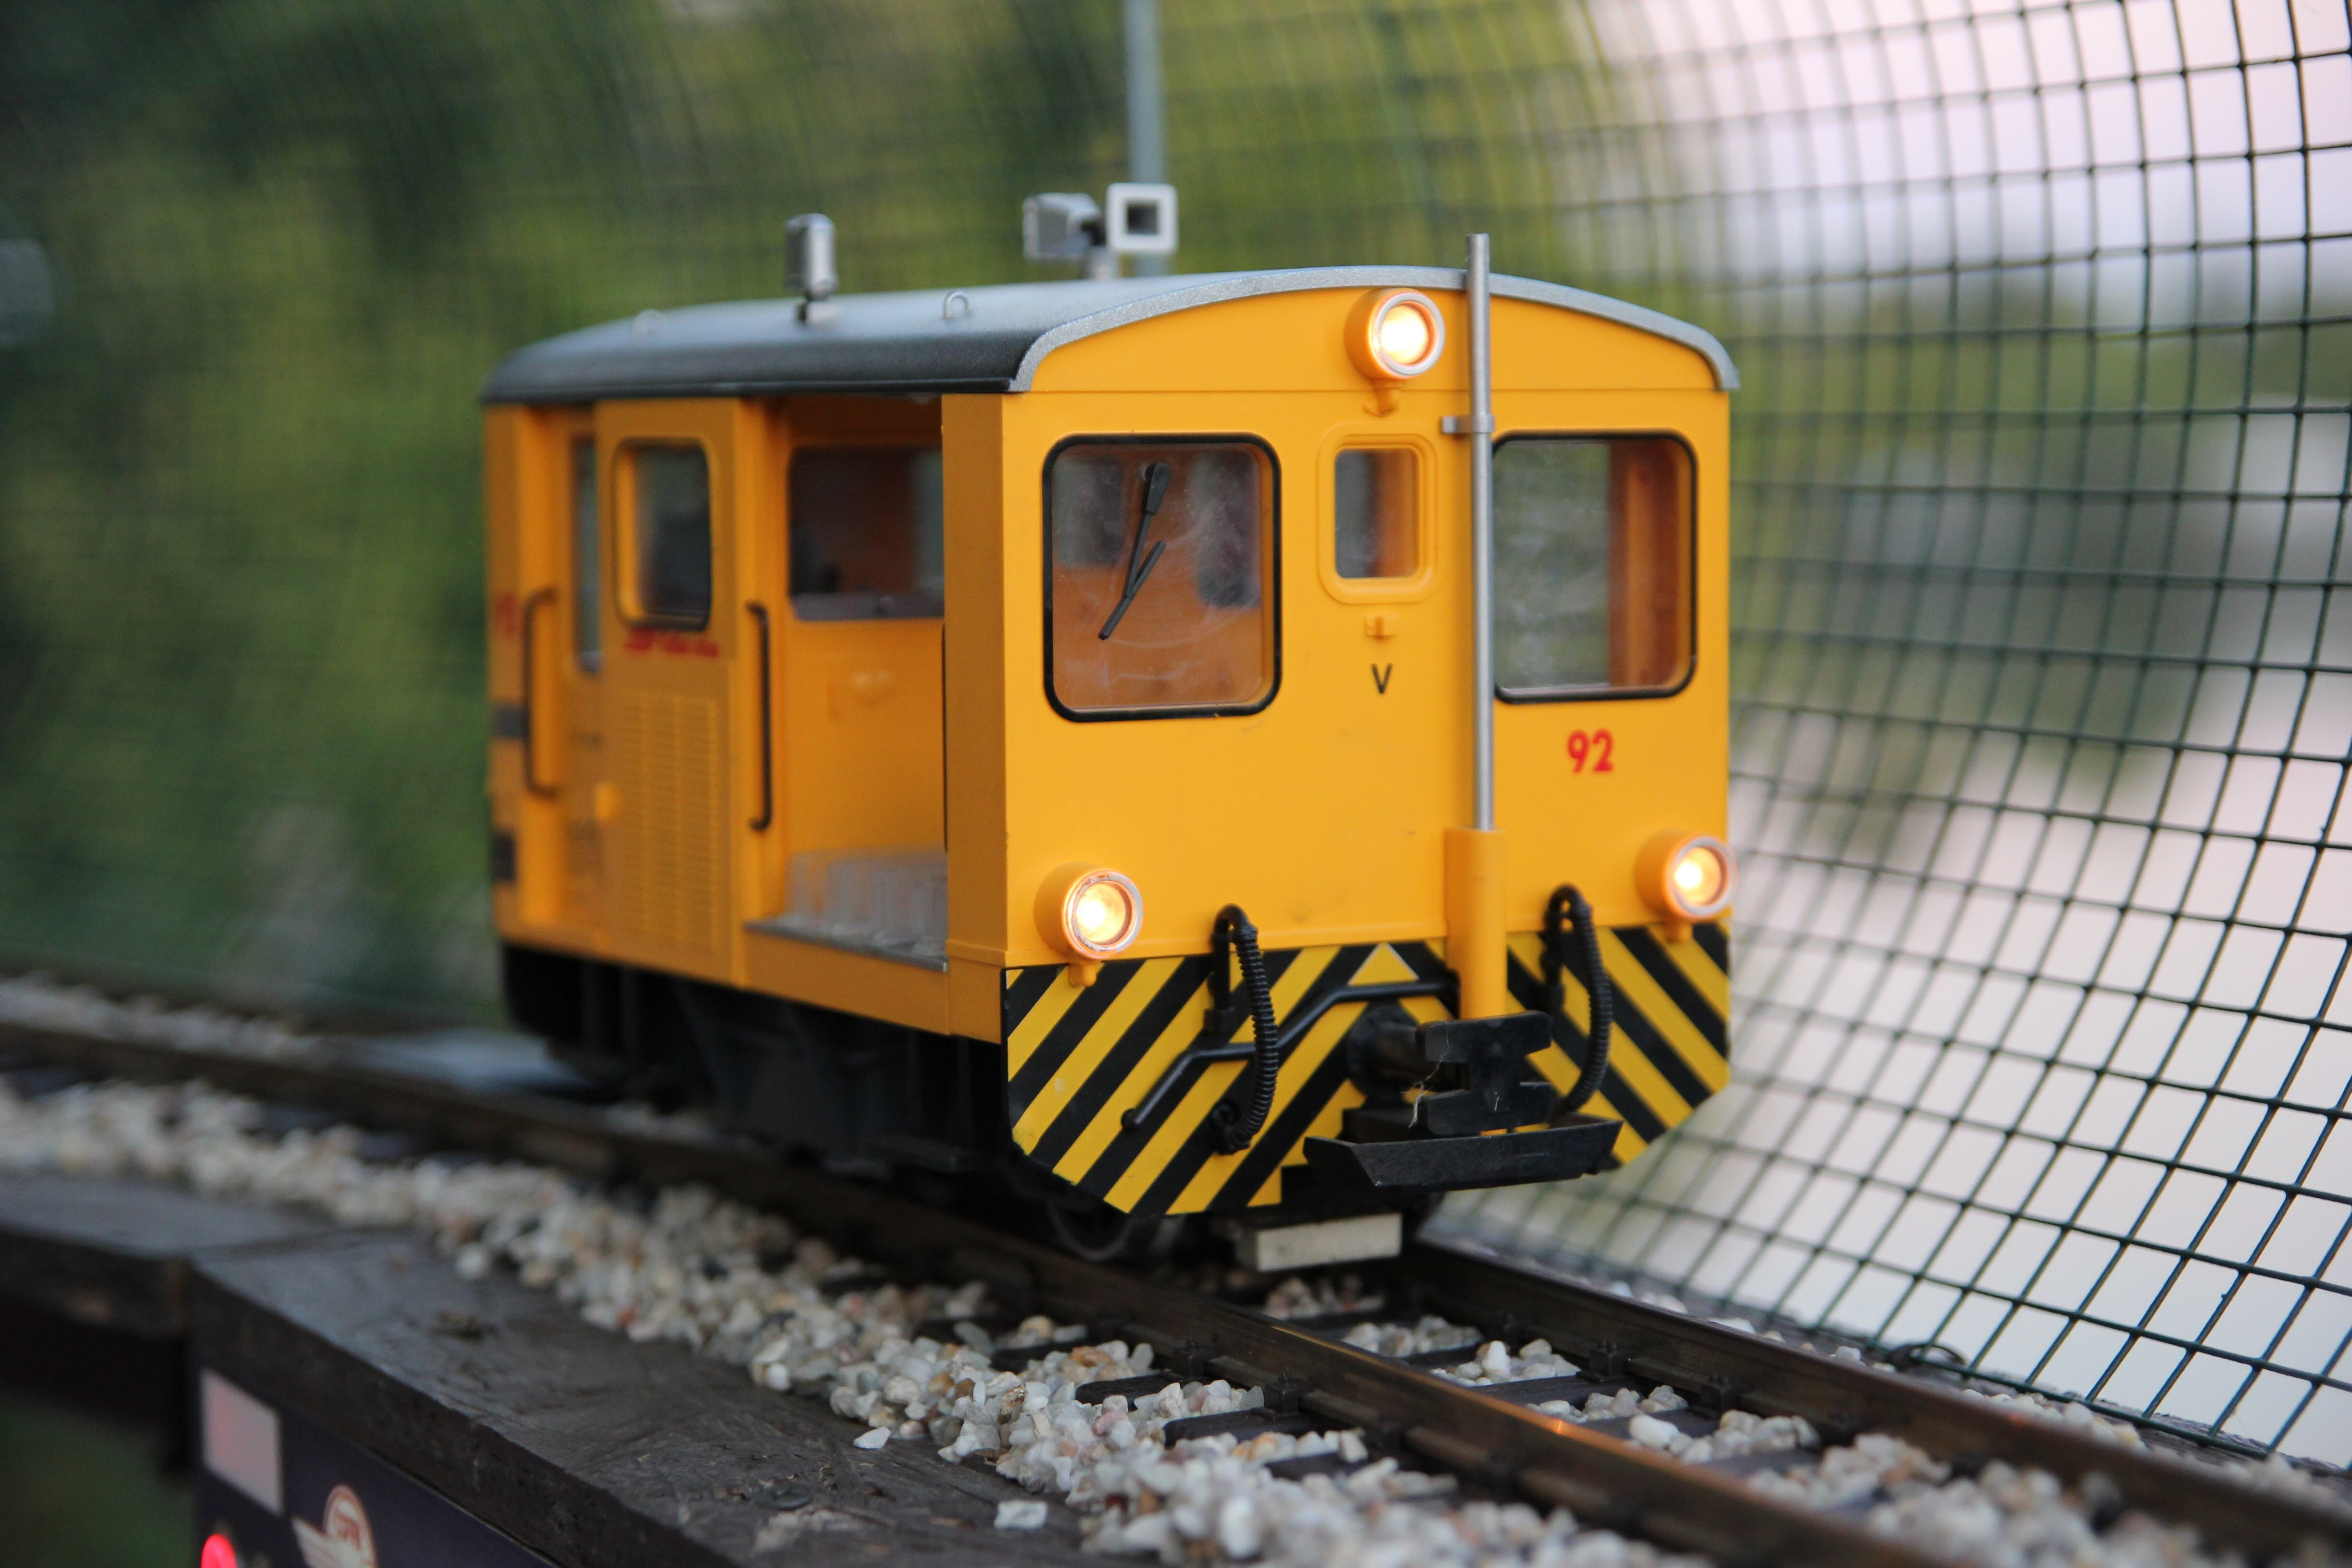 closeup photo of yellow and black train toy